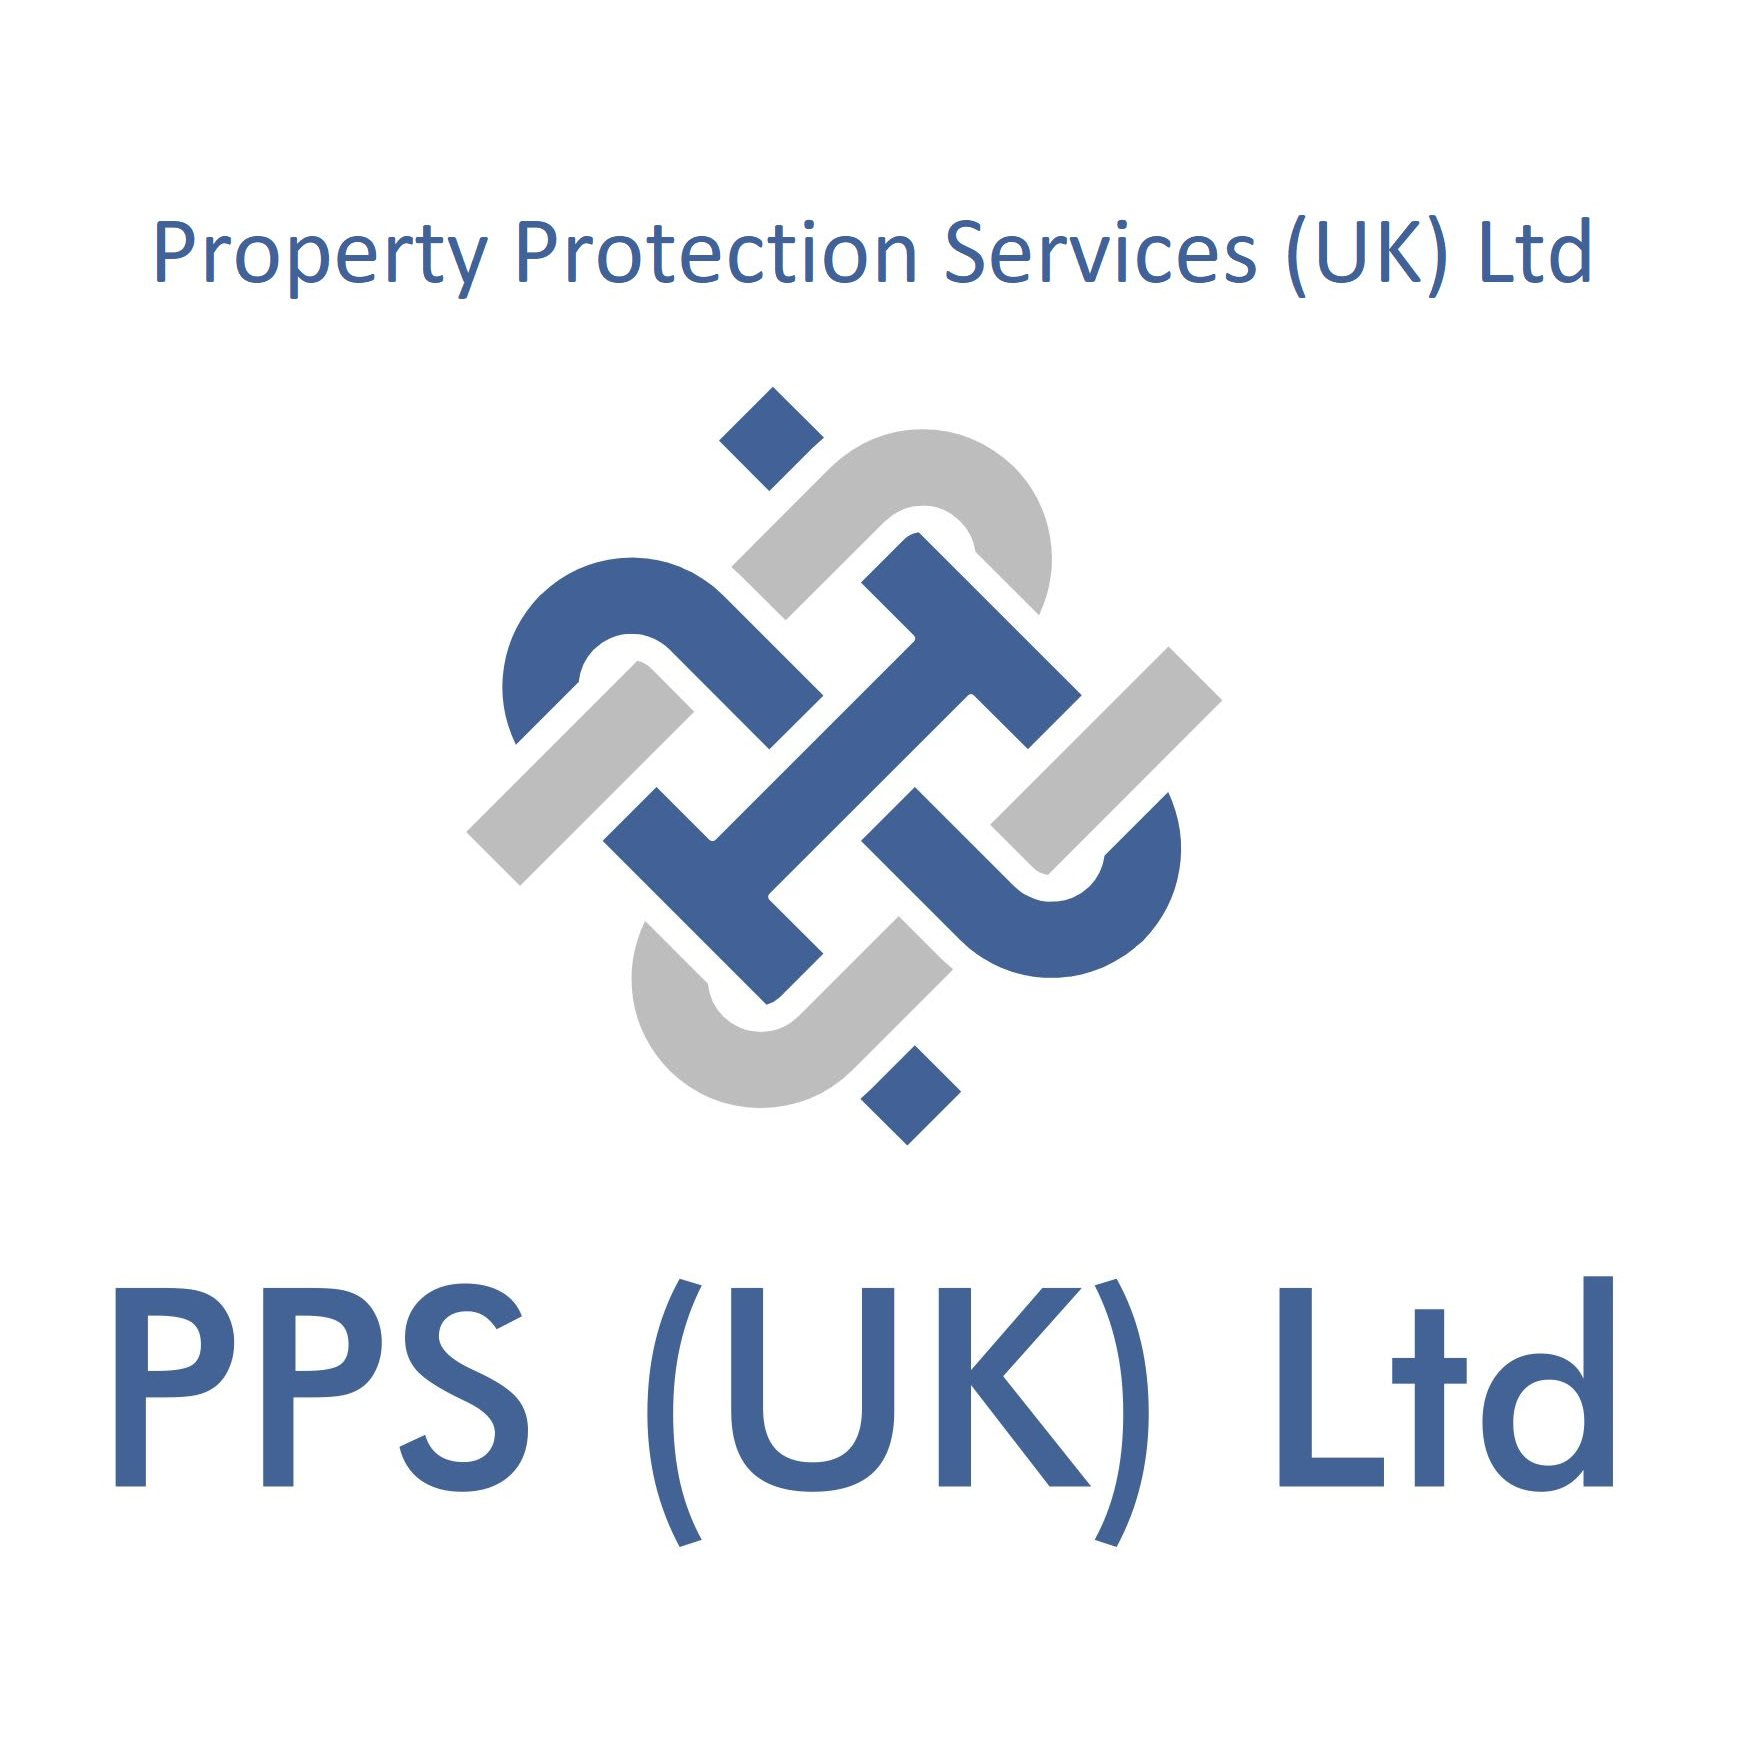 Property Protection Services (UK) Ltd - Bridgwater, Somerset TA7 0RX - 01823 740013 | ShowMeLocal.com